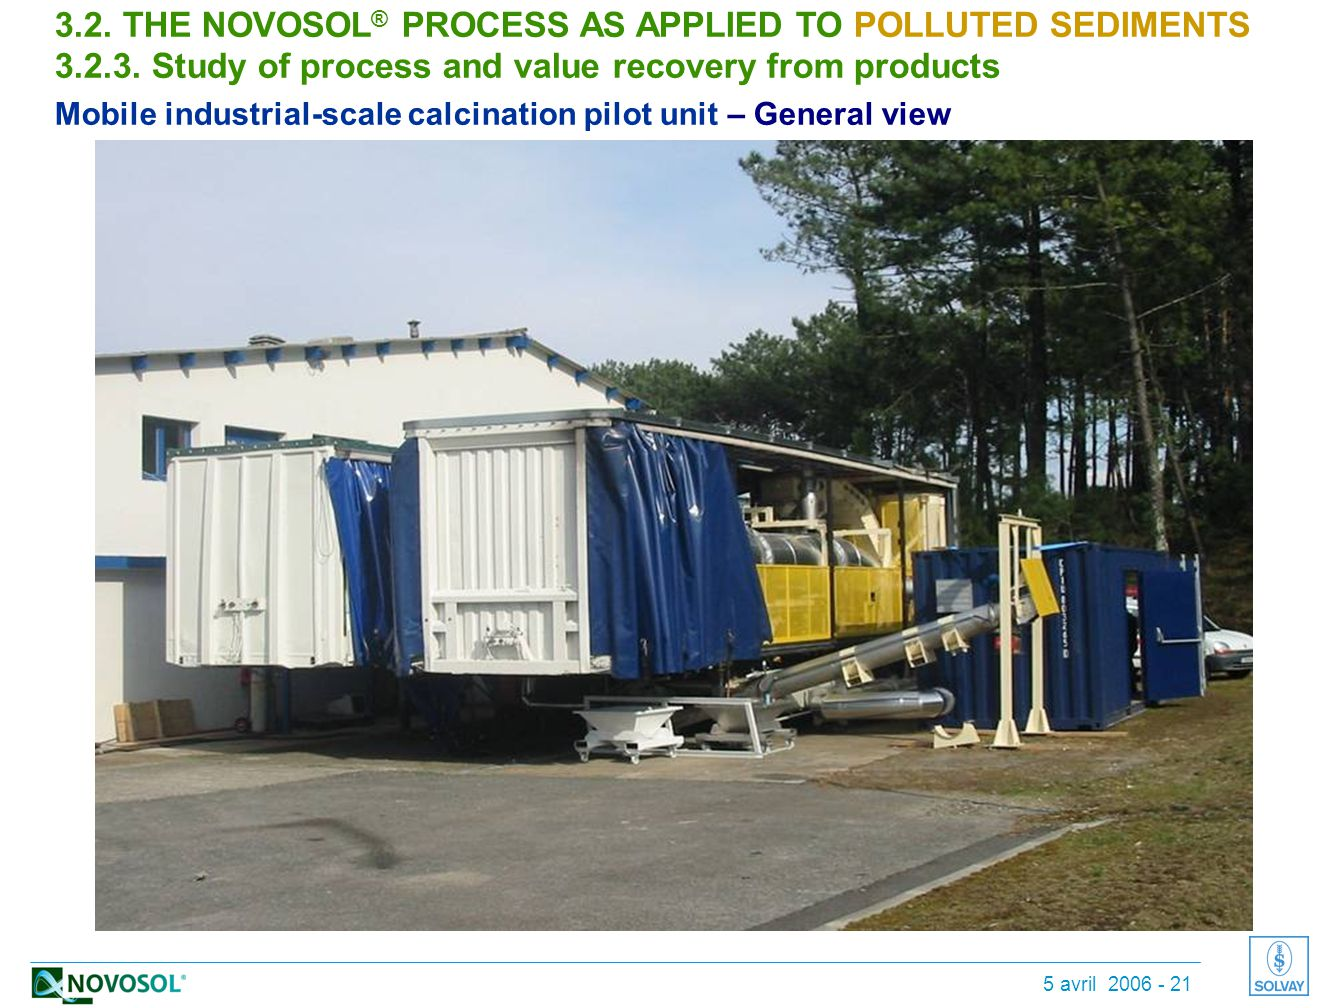 5 avril 2006 - 21 3.2.THE NOVOSOL ® PROCESS AS APPLIED TO POLLUTED SEDIMENTS 3.2.3.